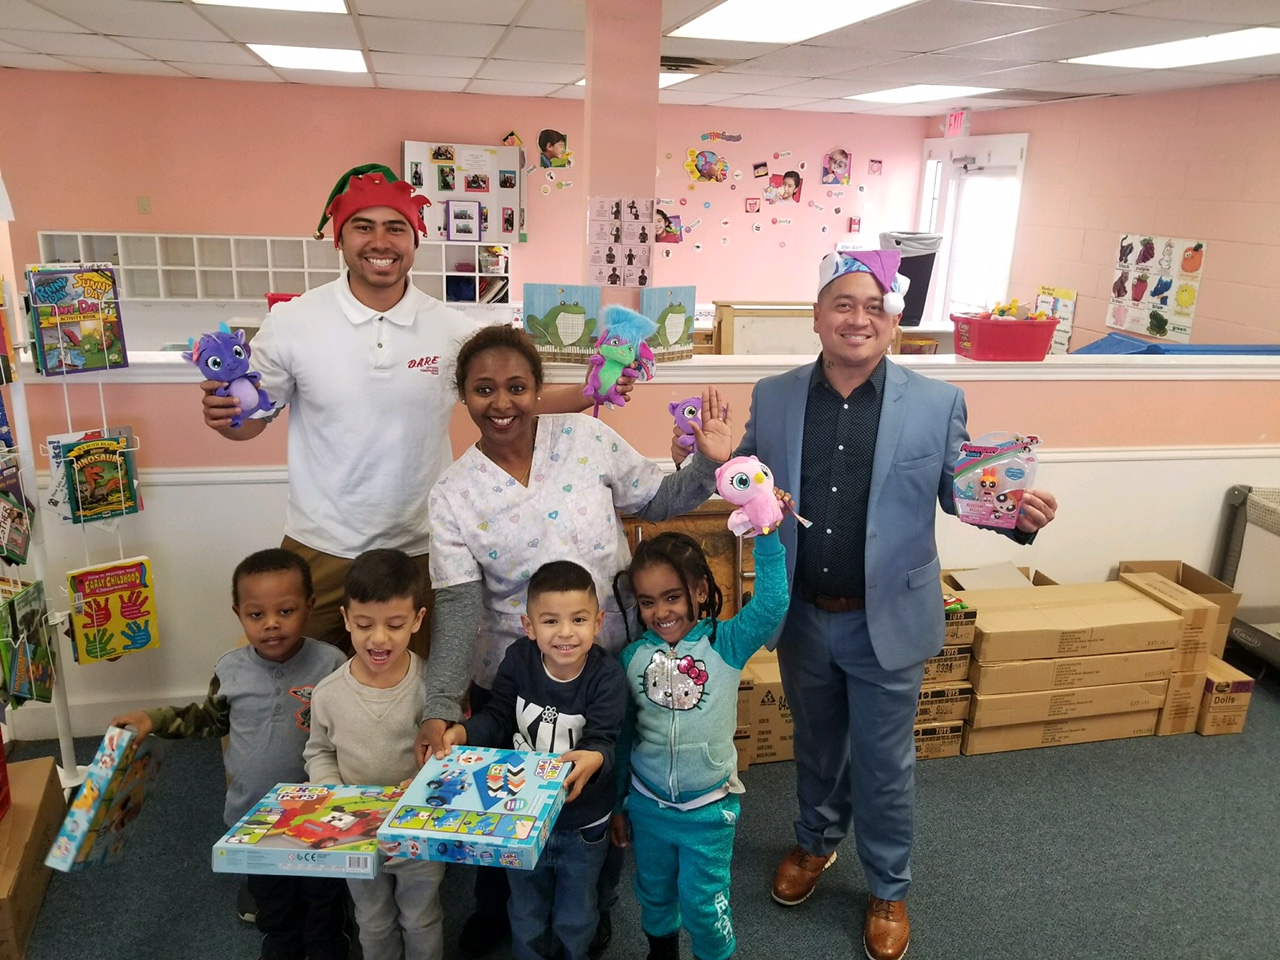 KARE Toy Donation to the Abugida Academy